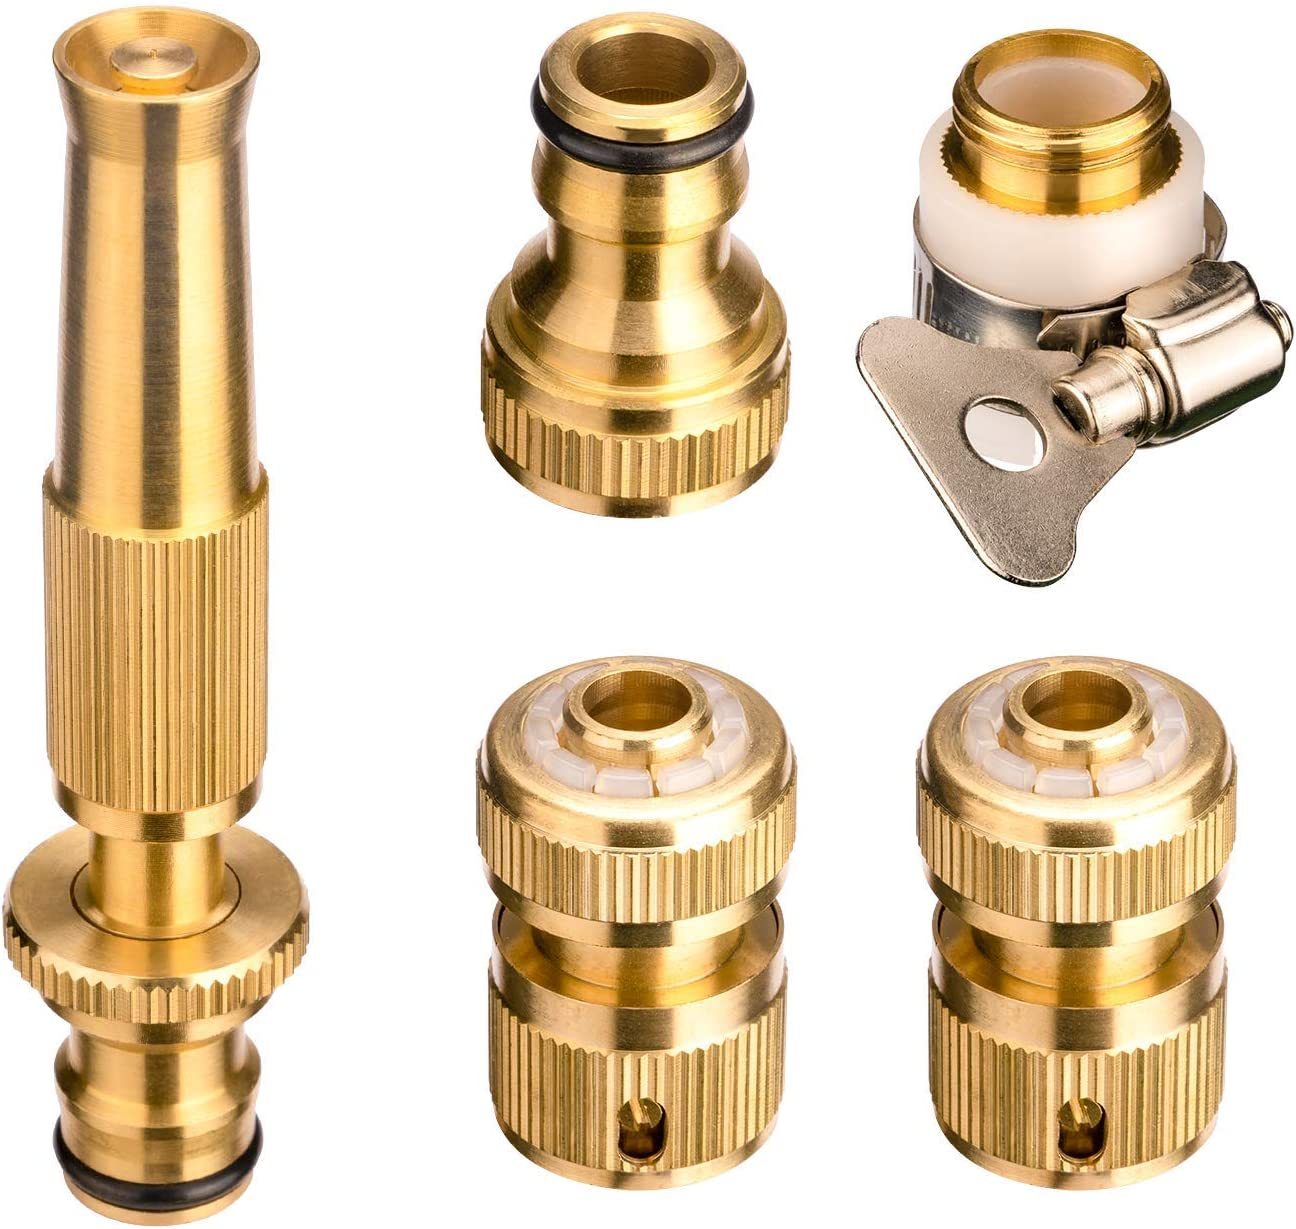 PGFUNNY Garden Hose Fitting Nozzle Brass Kit, Spray Hose Quick Connect, Fit 1/2 Inch Standard Garden Hose Perfect for Washing Car, Porch, Patio, Watering Flowers, 5 Pack